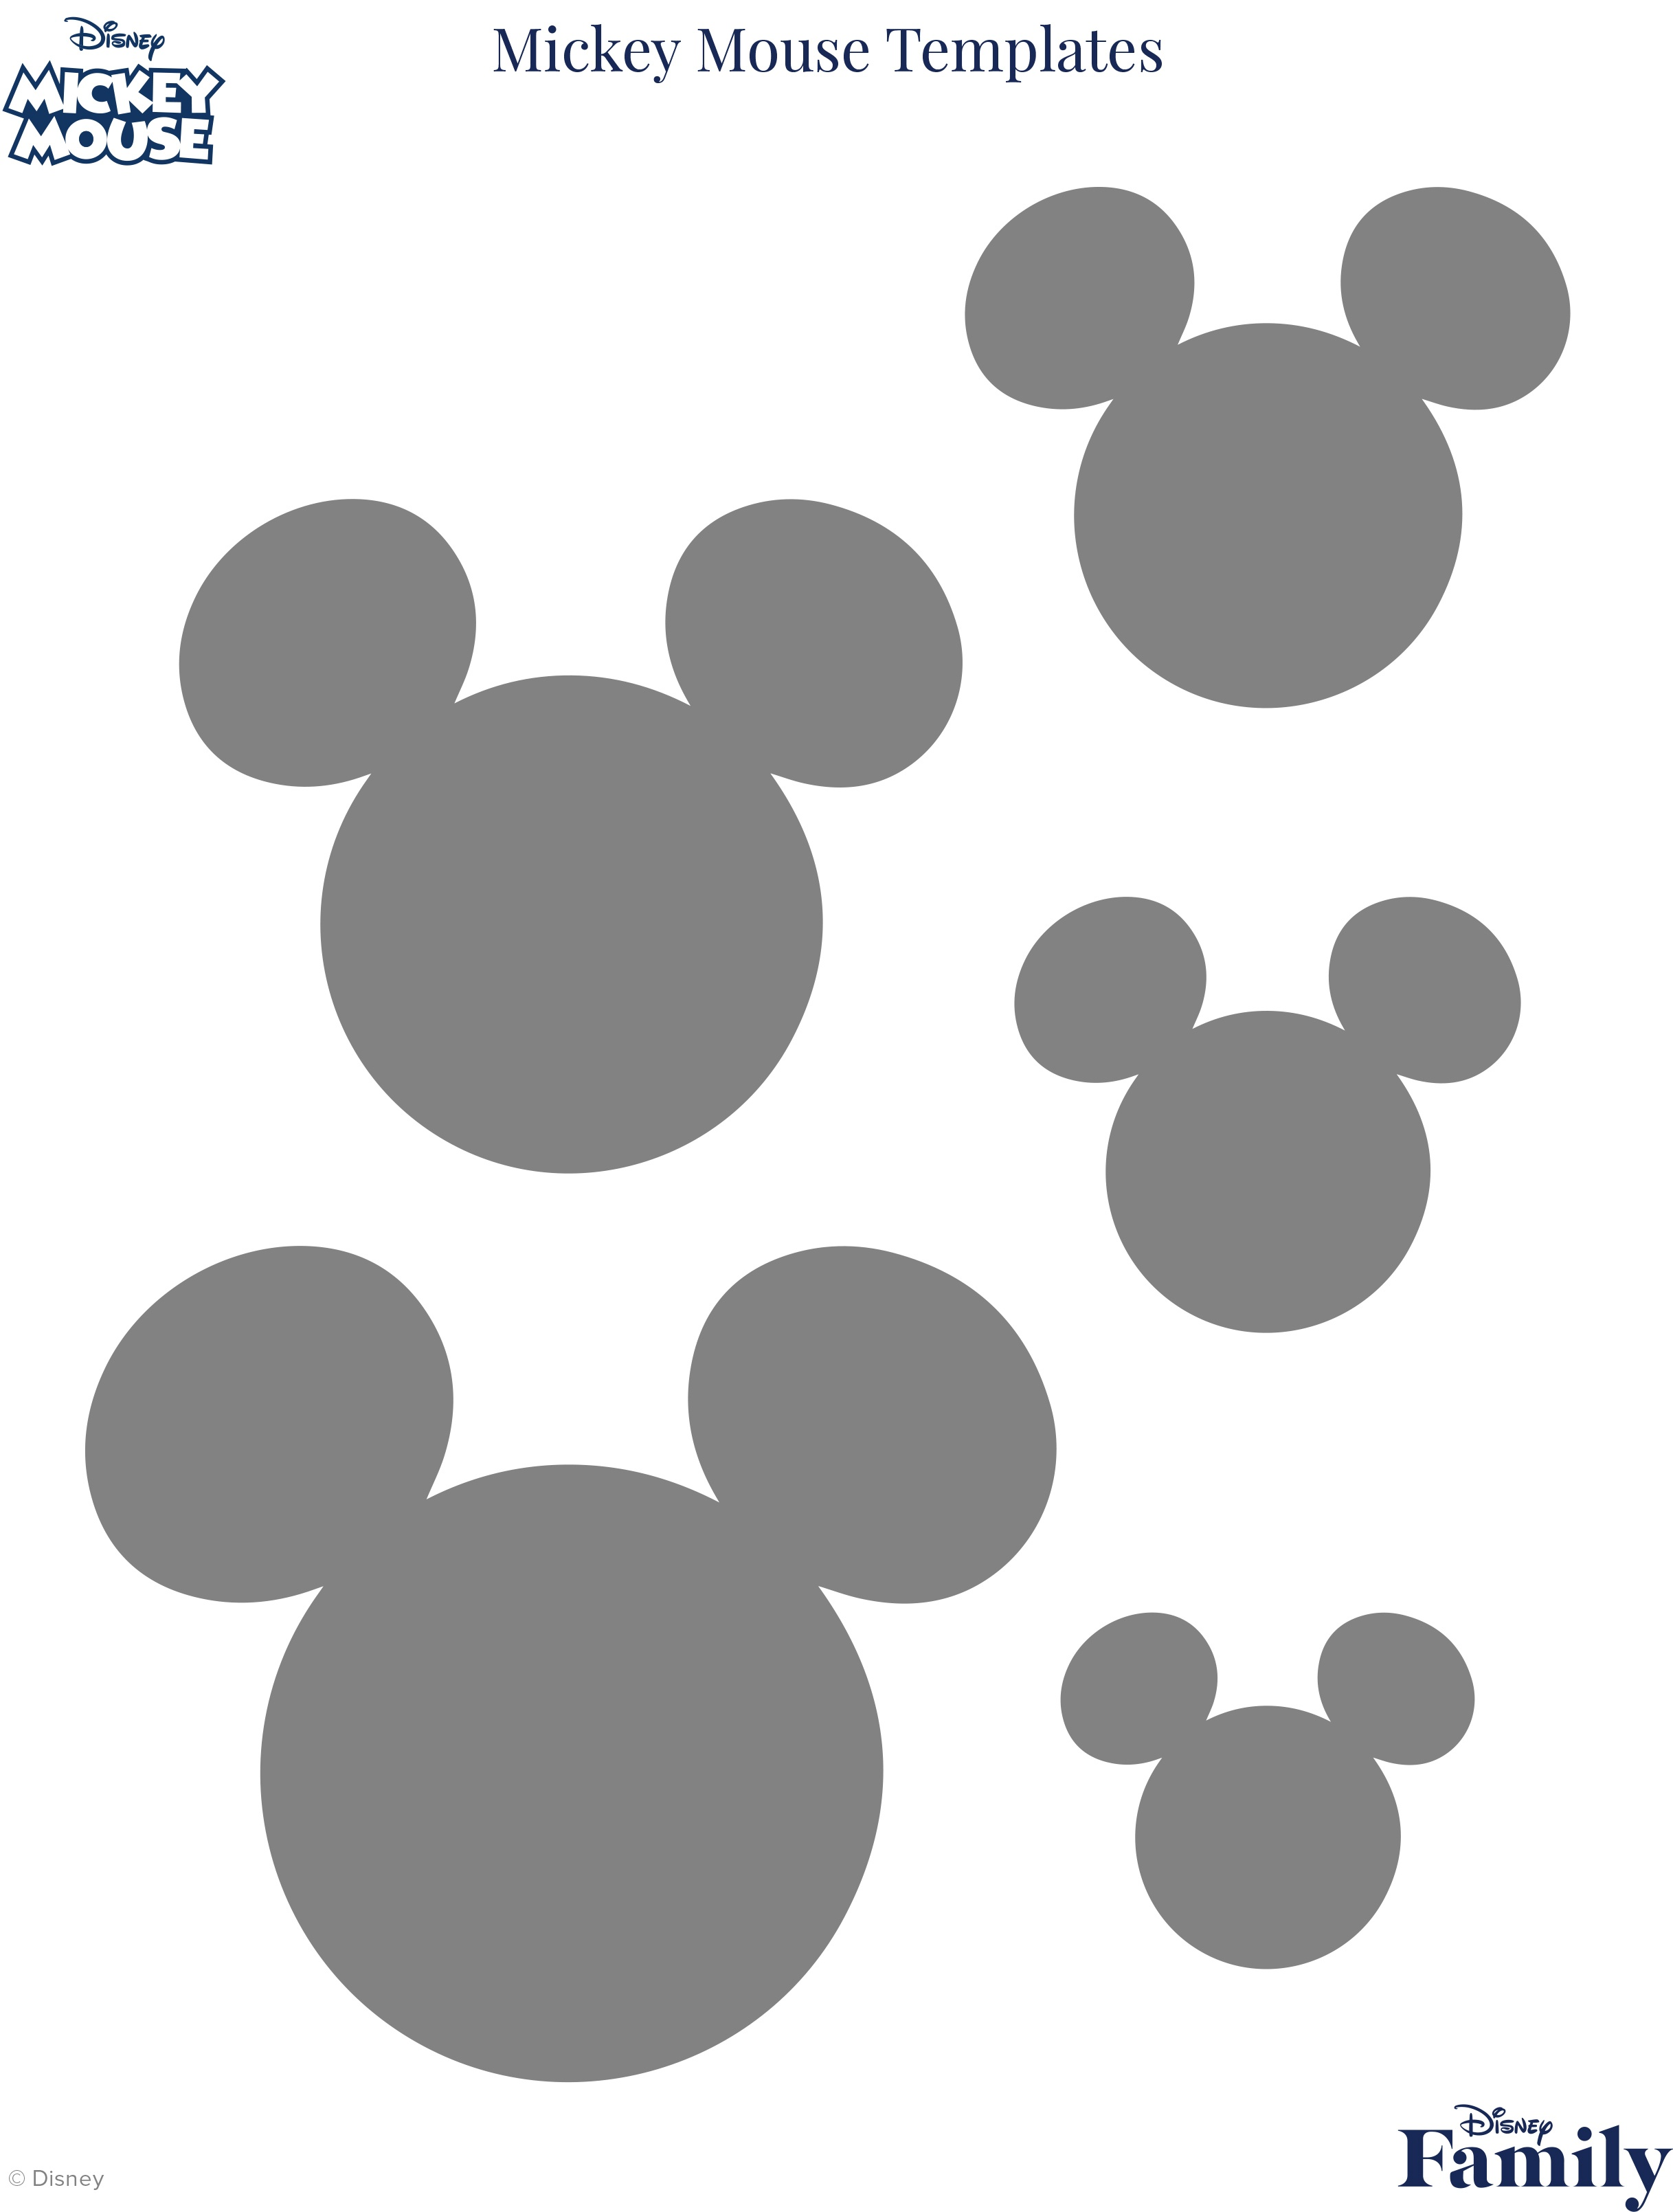 Mickey Mouse Template | Disney Family - Free Printable Disney Font Stencils